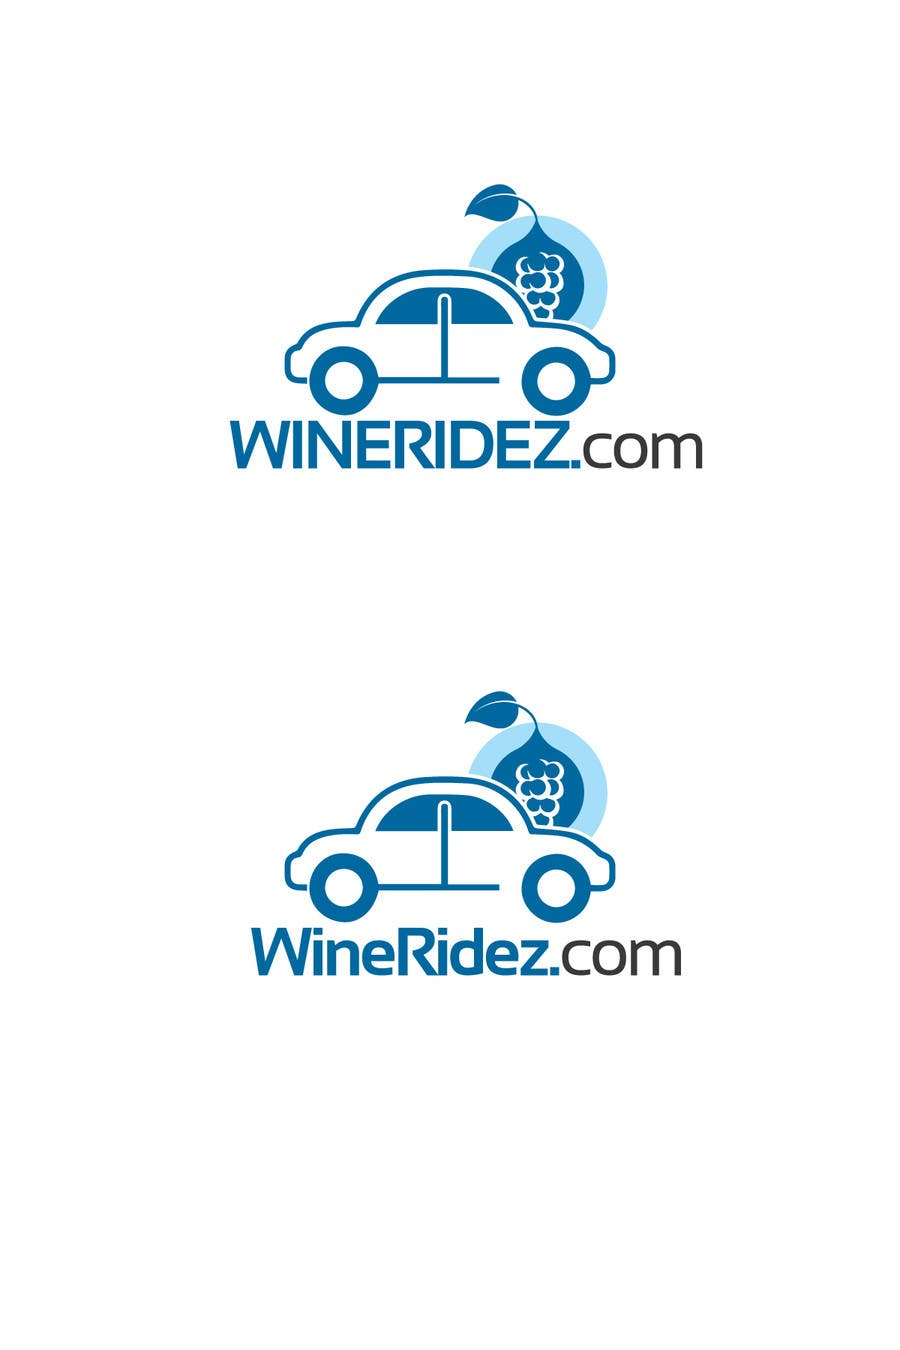 Konkurrenceindlæg #17 for Design a Logo for taxi type service in Wine Country